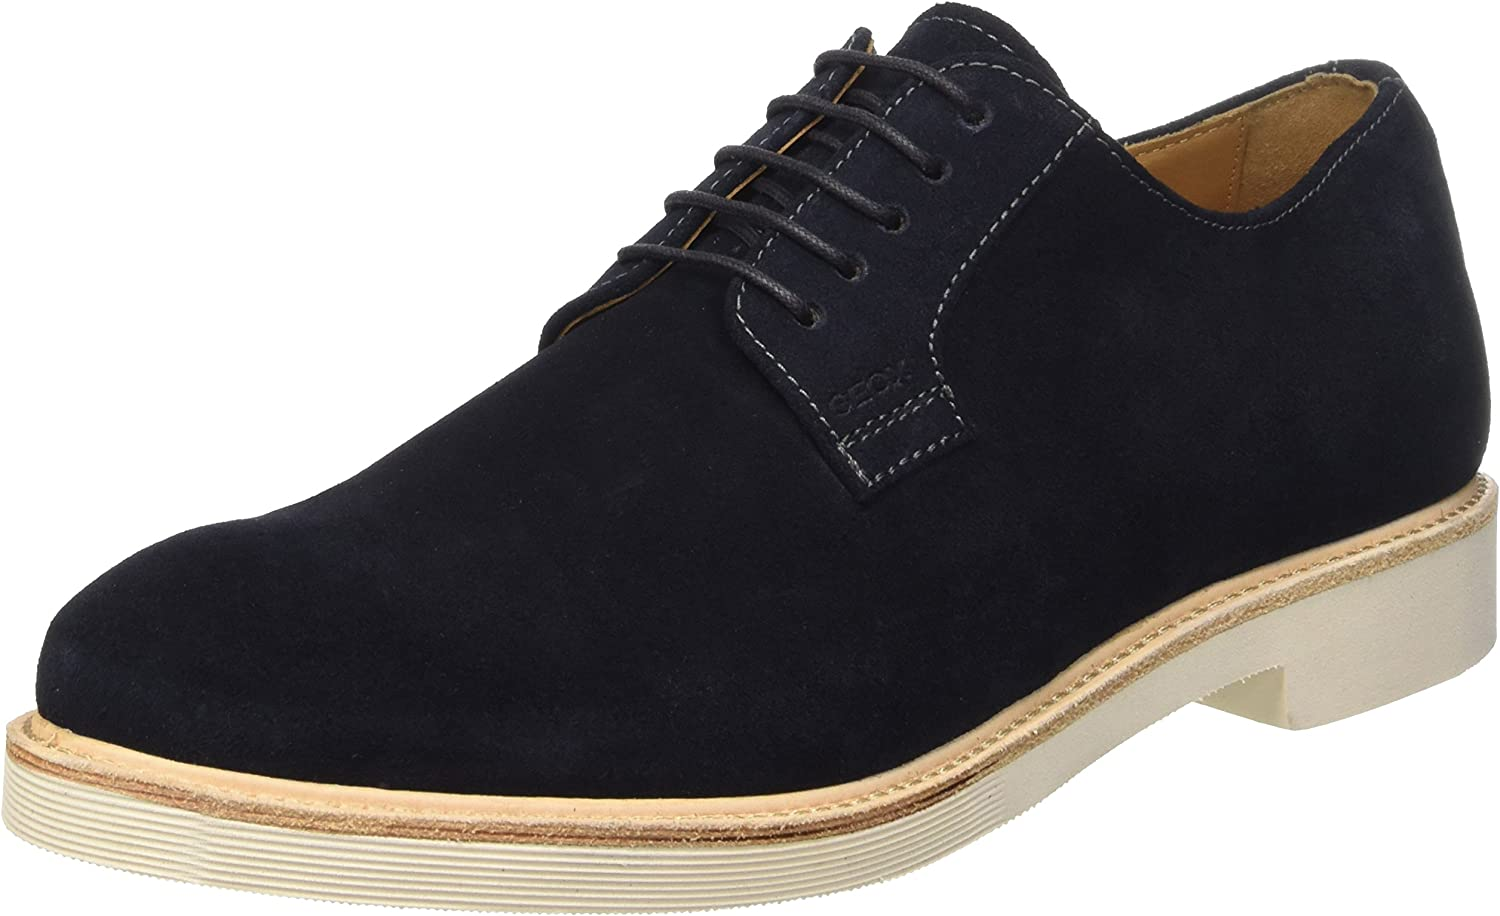 Geox U Damocle C, Faible-Top Chaussures Homme